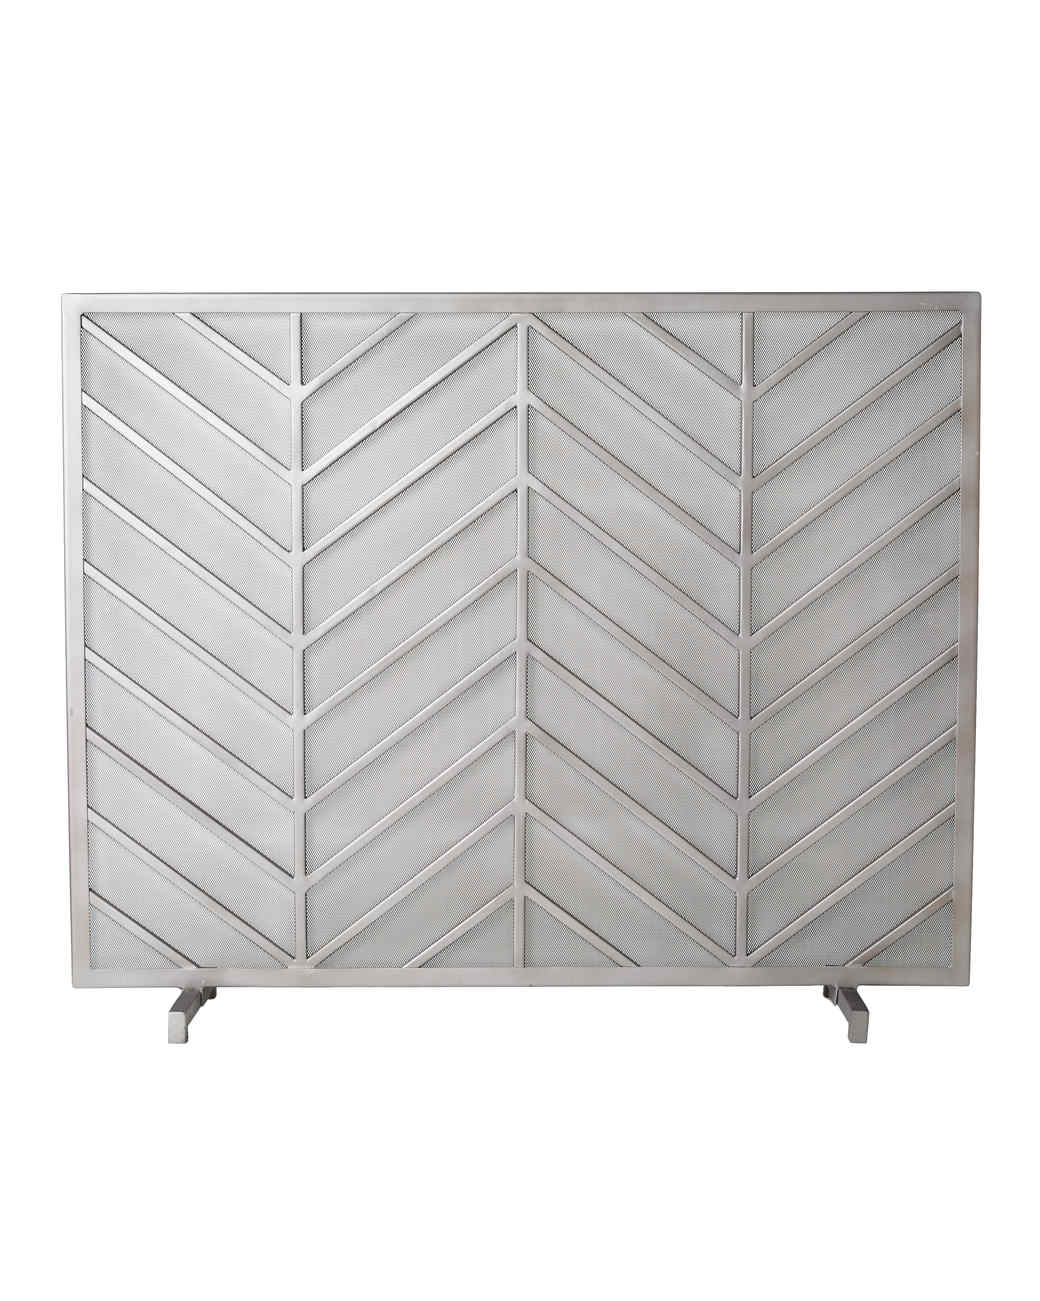 silver-fireplace-screen-002-d112354.jpg